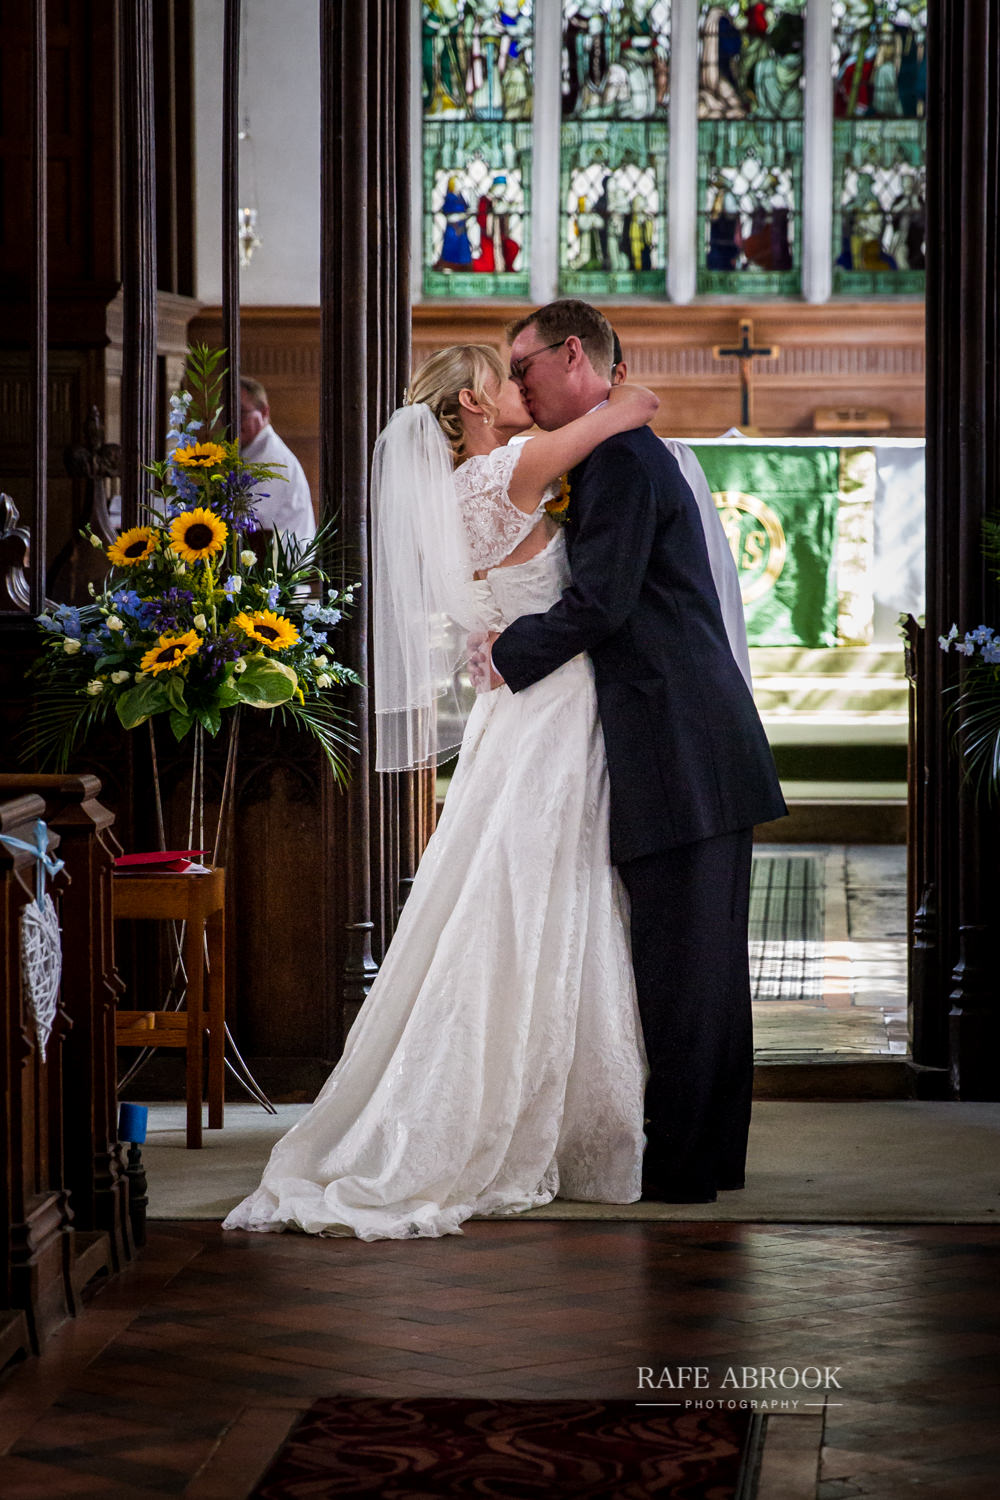 minstrel court wedding royston cambridge hertfordshire wedding photographer-1163.jpg